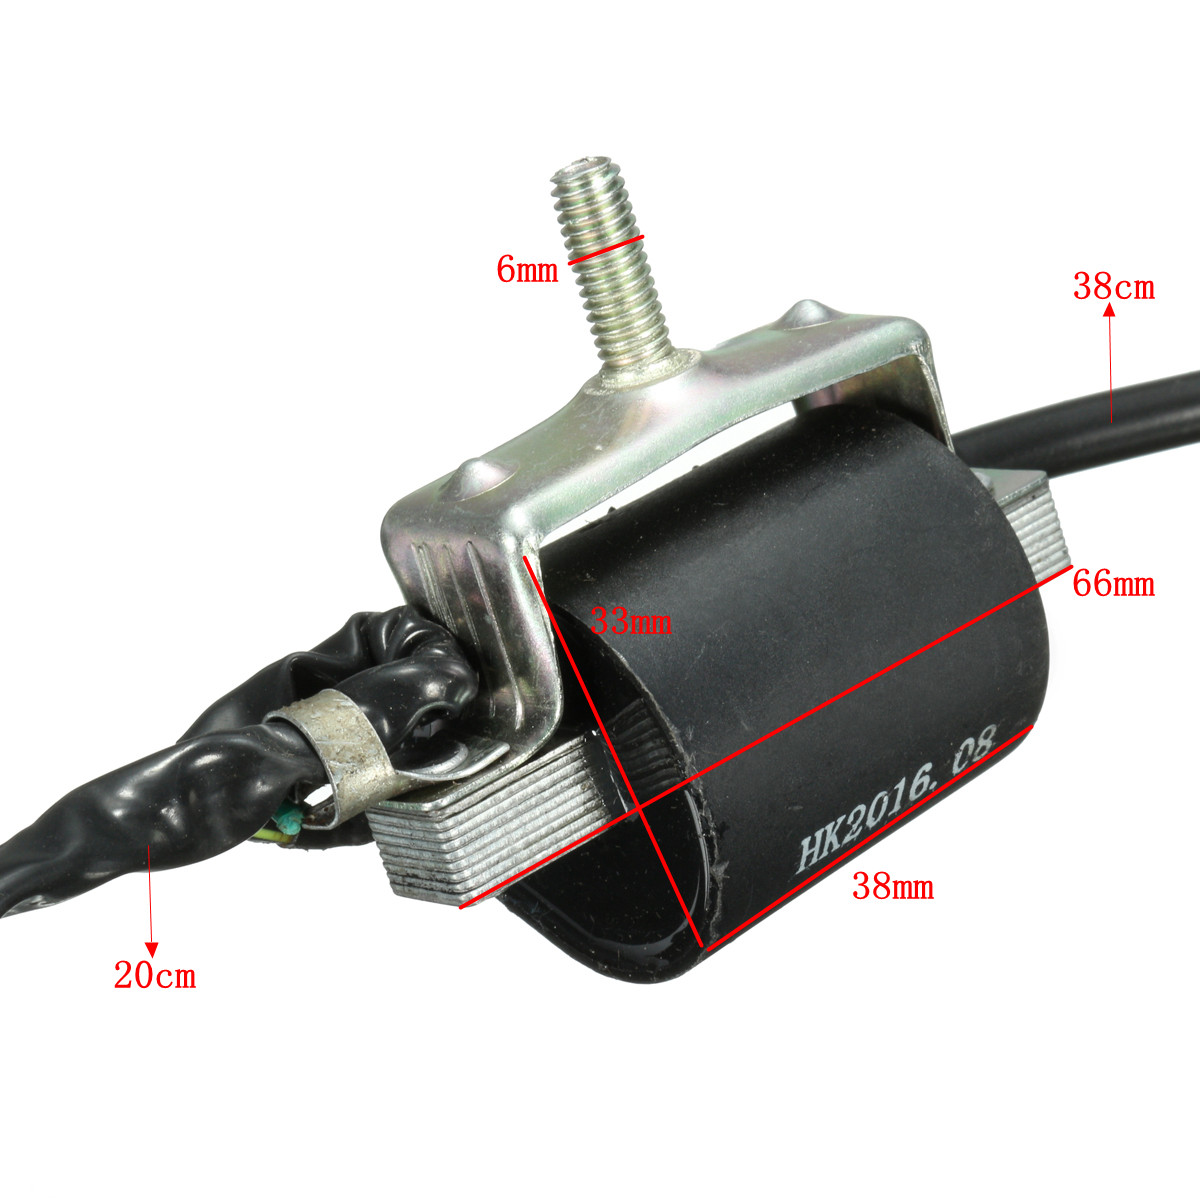 Black Ignition Coil CDI Unit Rectifier Regulator Fits for 110cc 125cc 140cc Pit Dirt Bike Trail Bike Dirt Bike Quad ATV